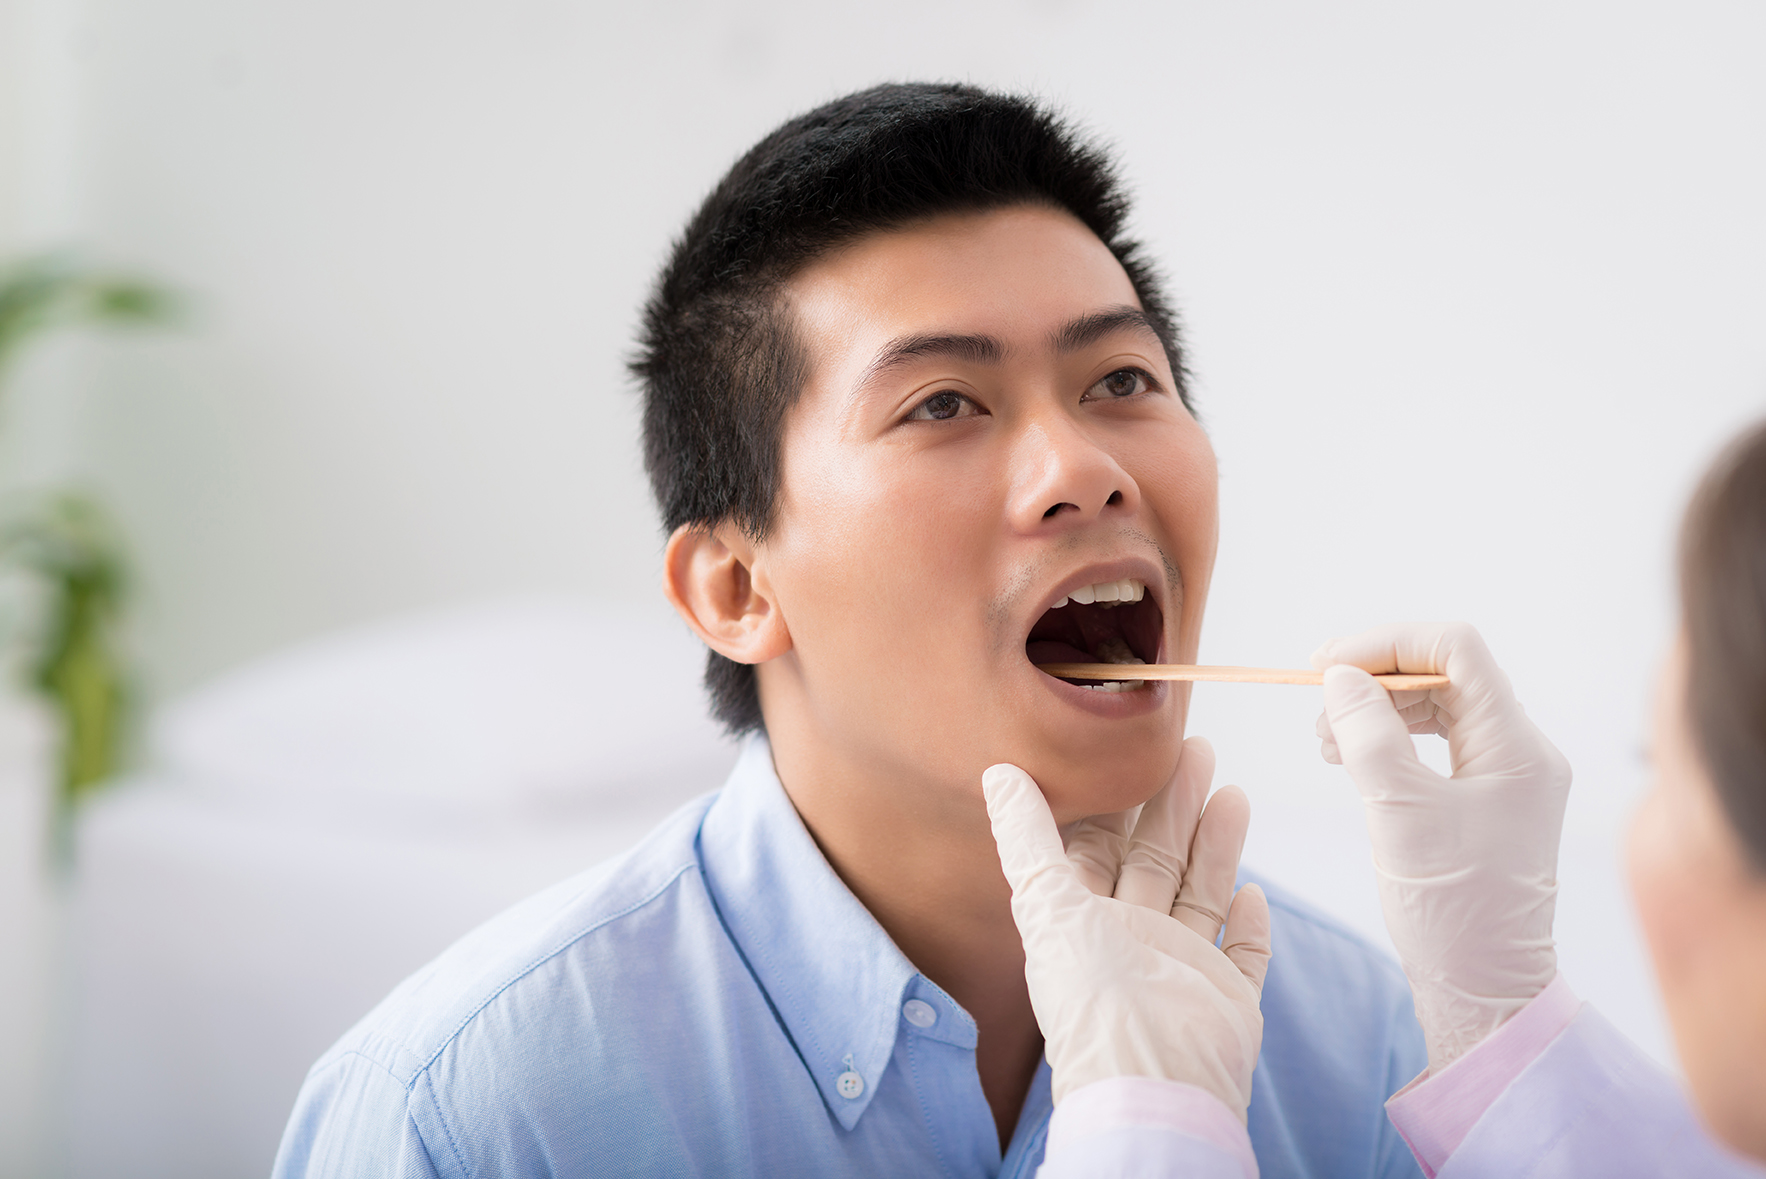 ENT Doctor examining throat of patient with tongue depressor